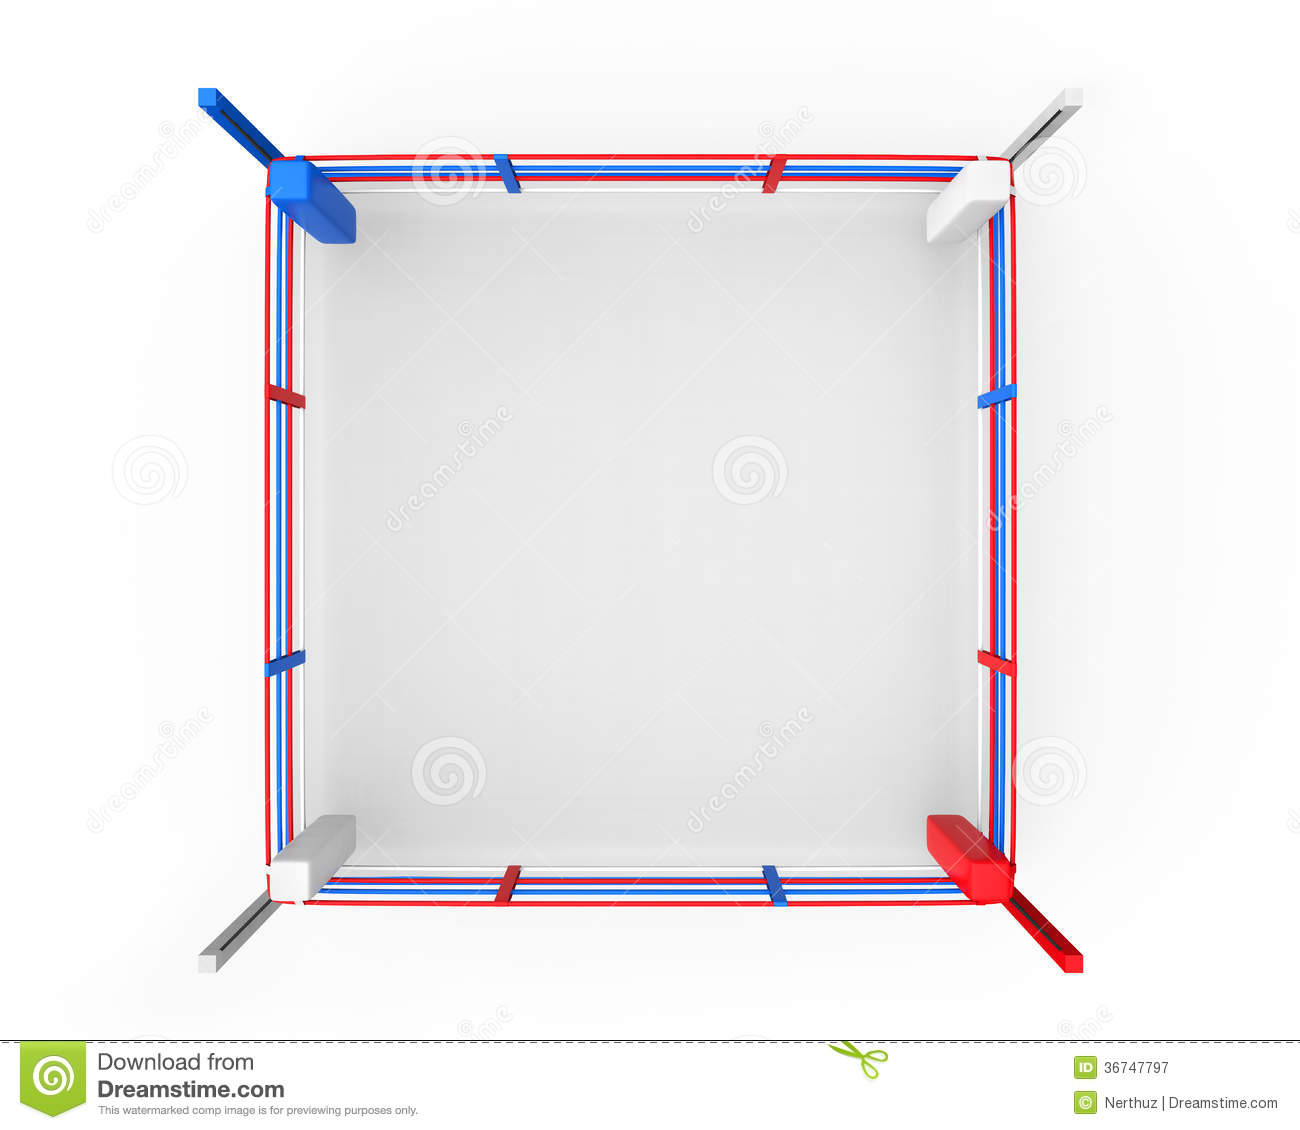 Boxing Ring Background Clipart.